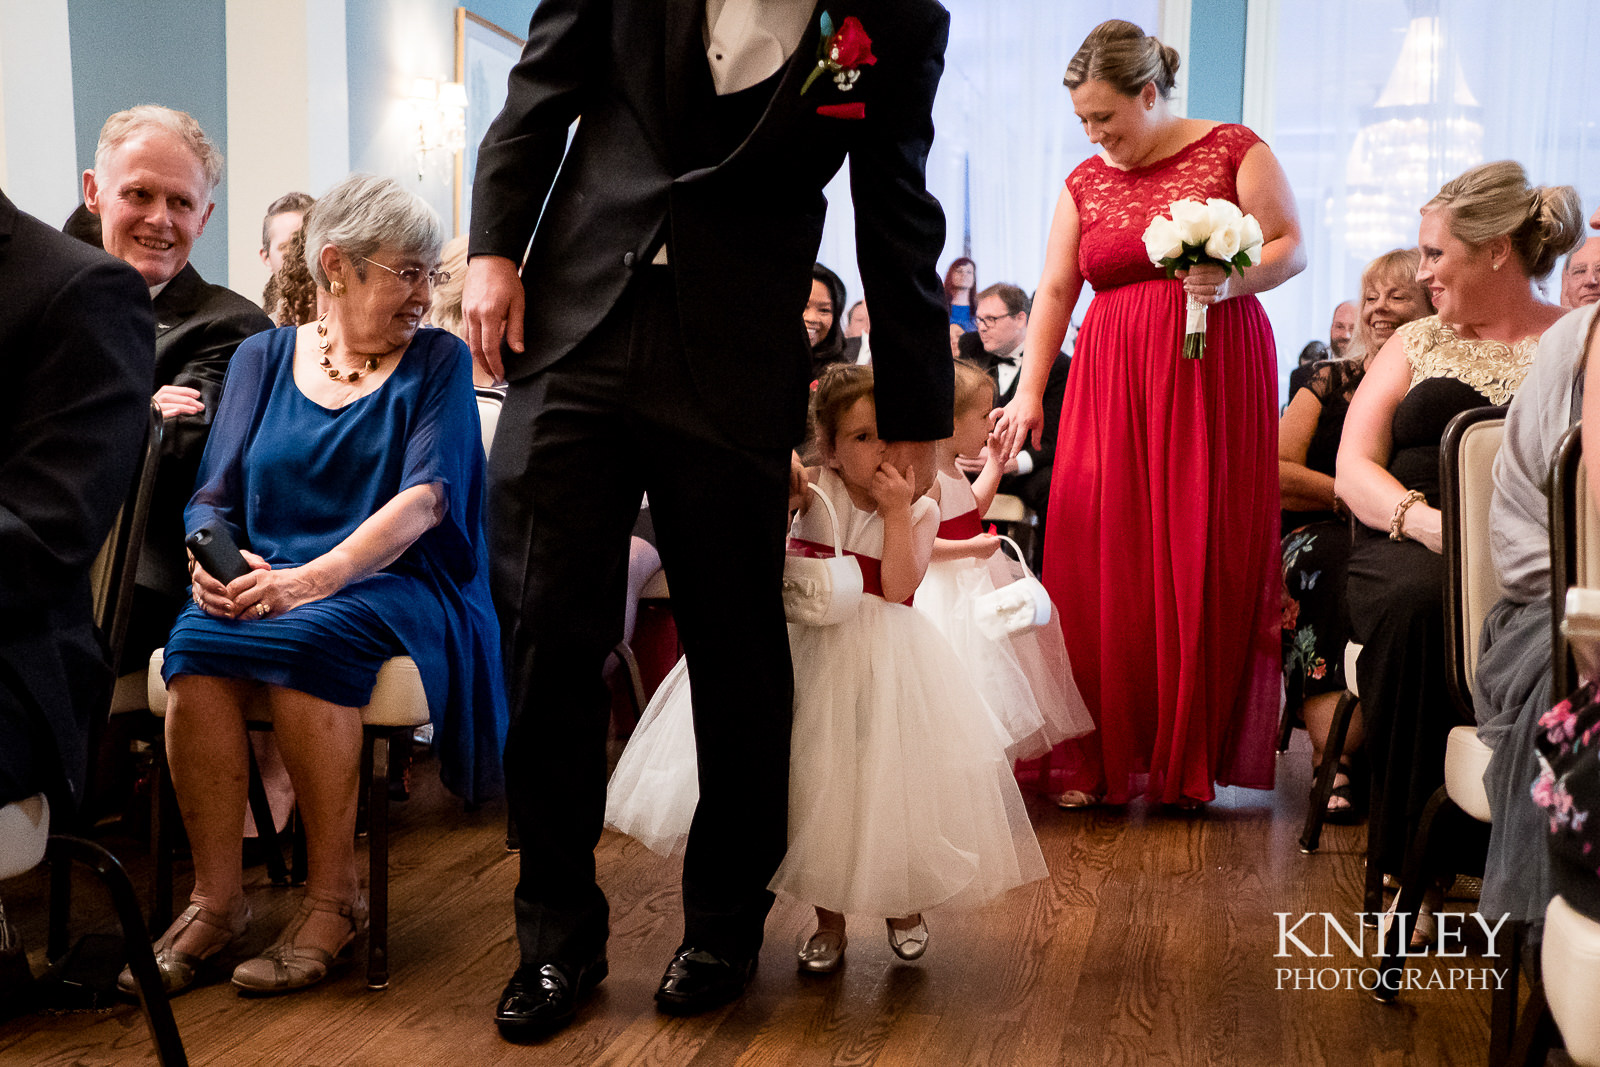 066 - Rochester NY wedding pictures - Genesee Valley Club - Ceremony and Reception - XT2A5551.jpg